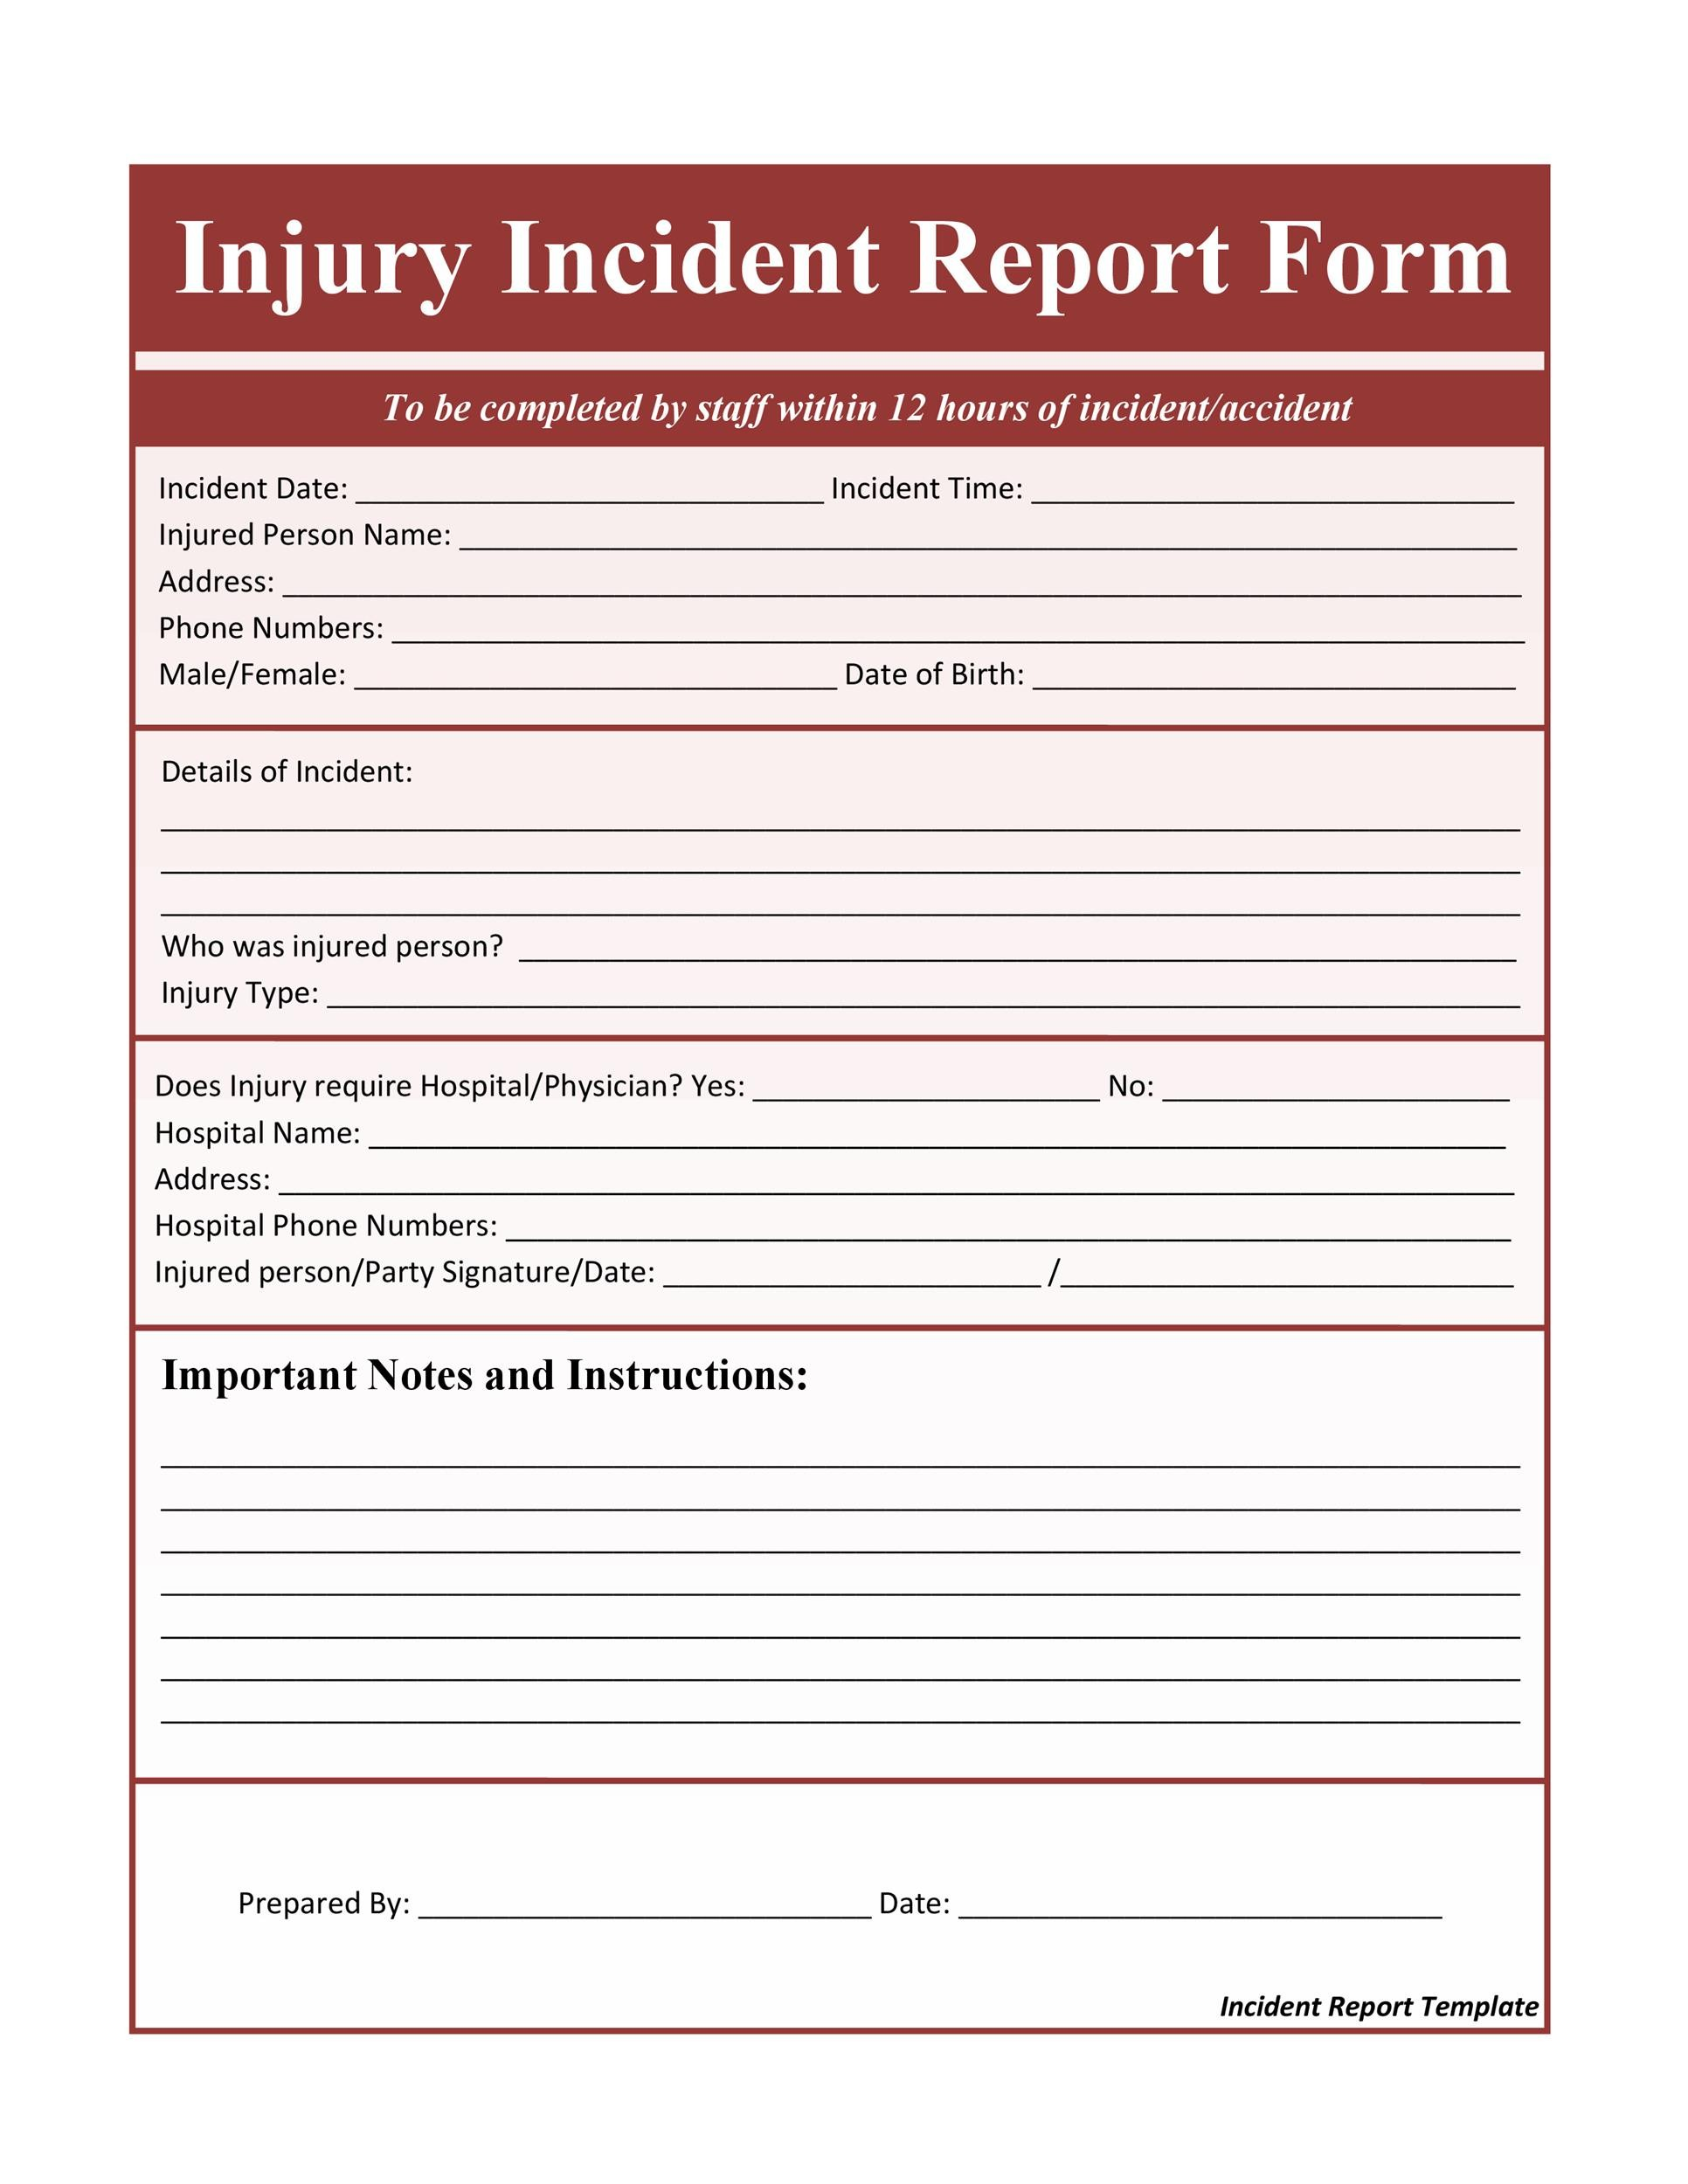 60+ Incident Report Template Employee, Police, Generic - Template Lab - Incident Reporting Form